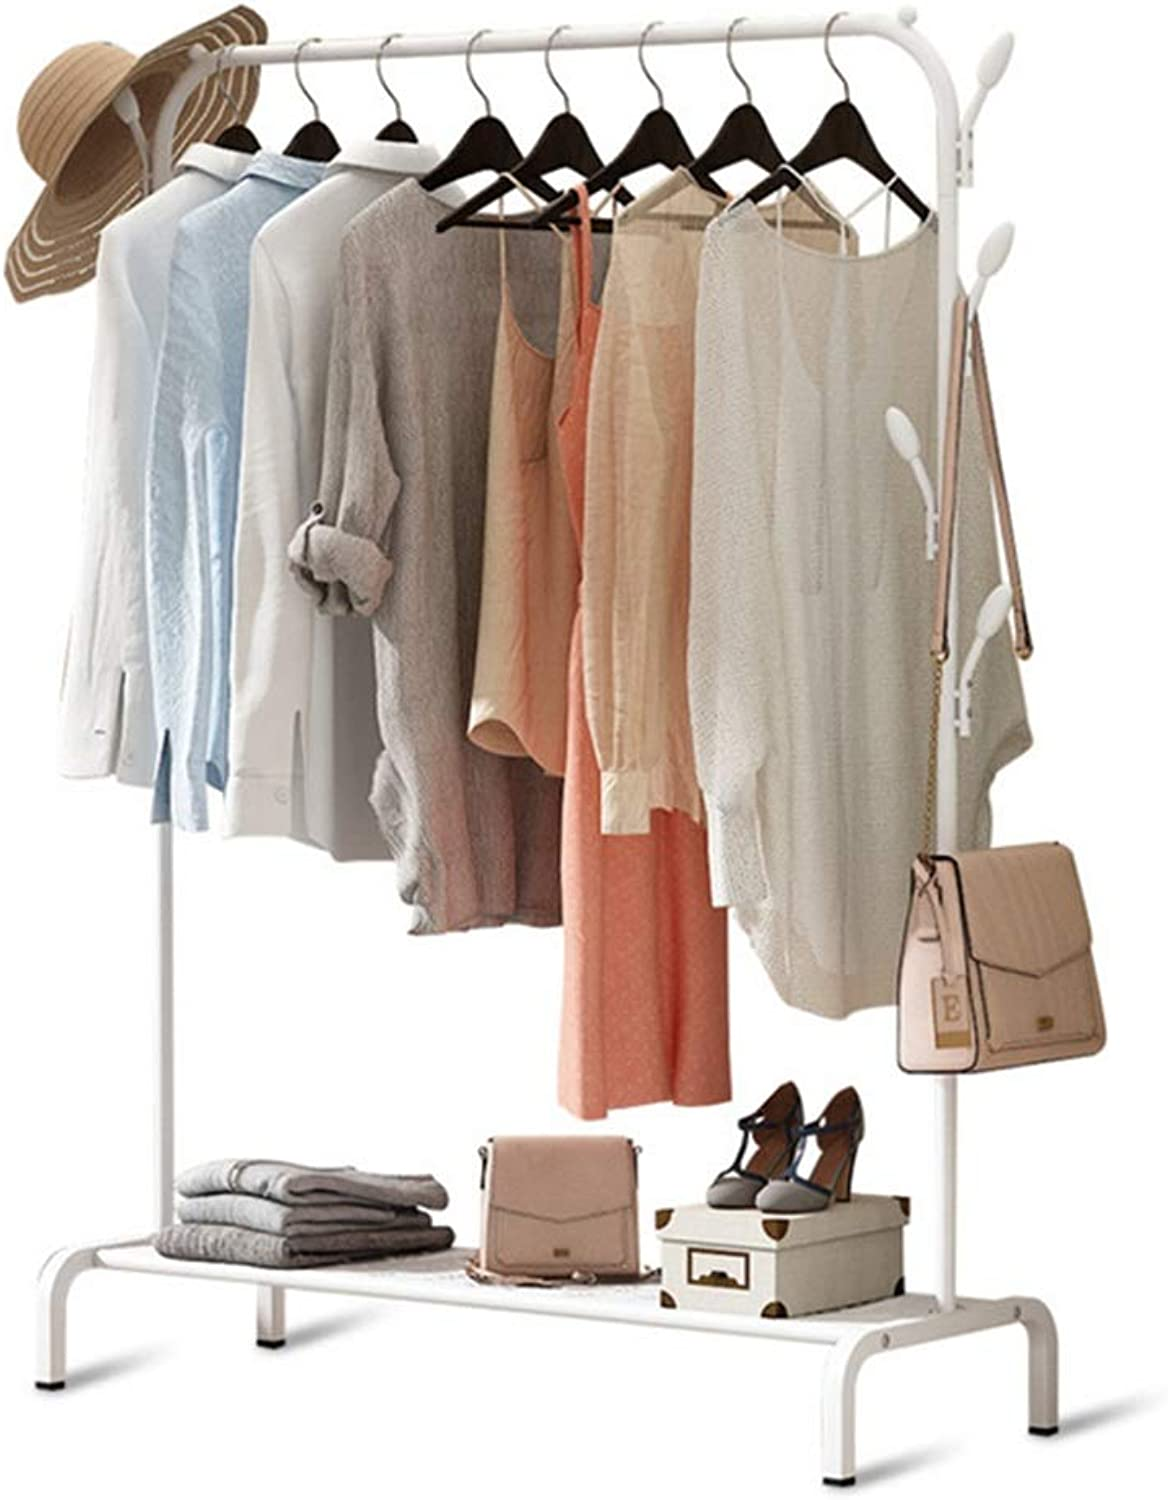 Standing Coat Racks Drying Rack Floor Folding Indoor Drying Rack Bedroom Hanger Home Simple Coat Rack Stall Stand -0223